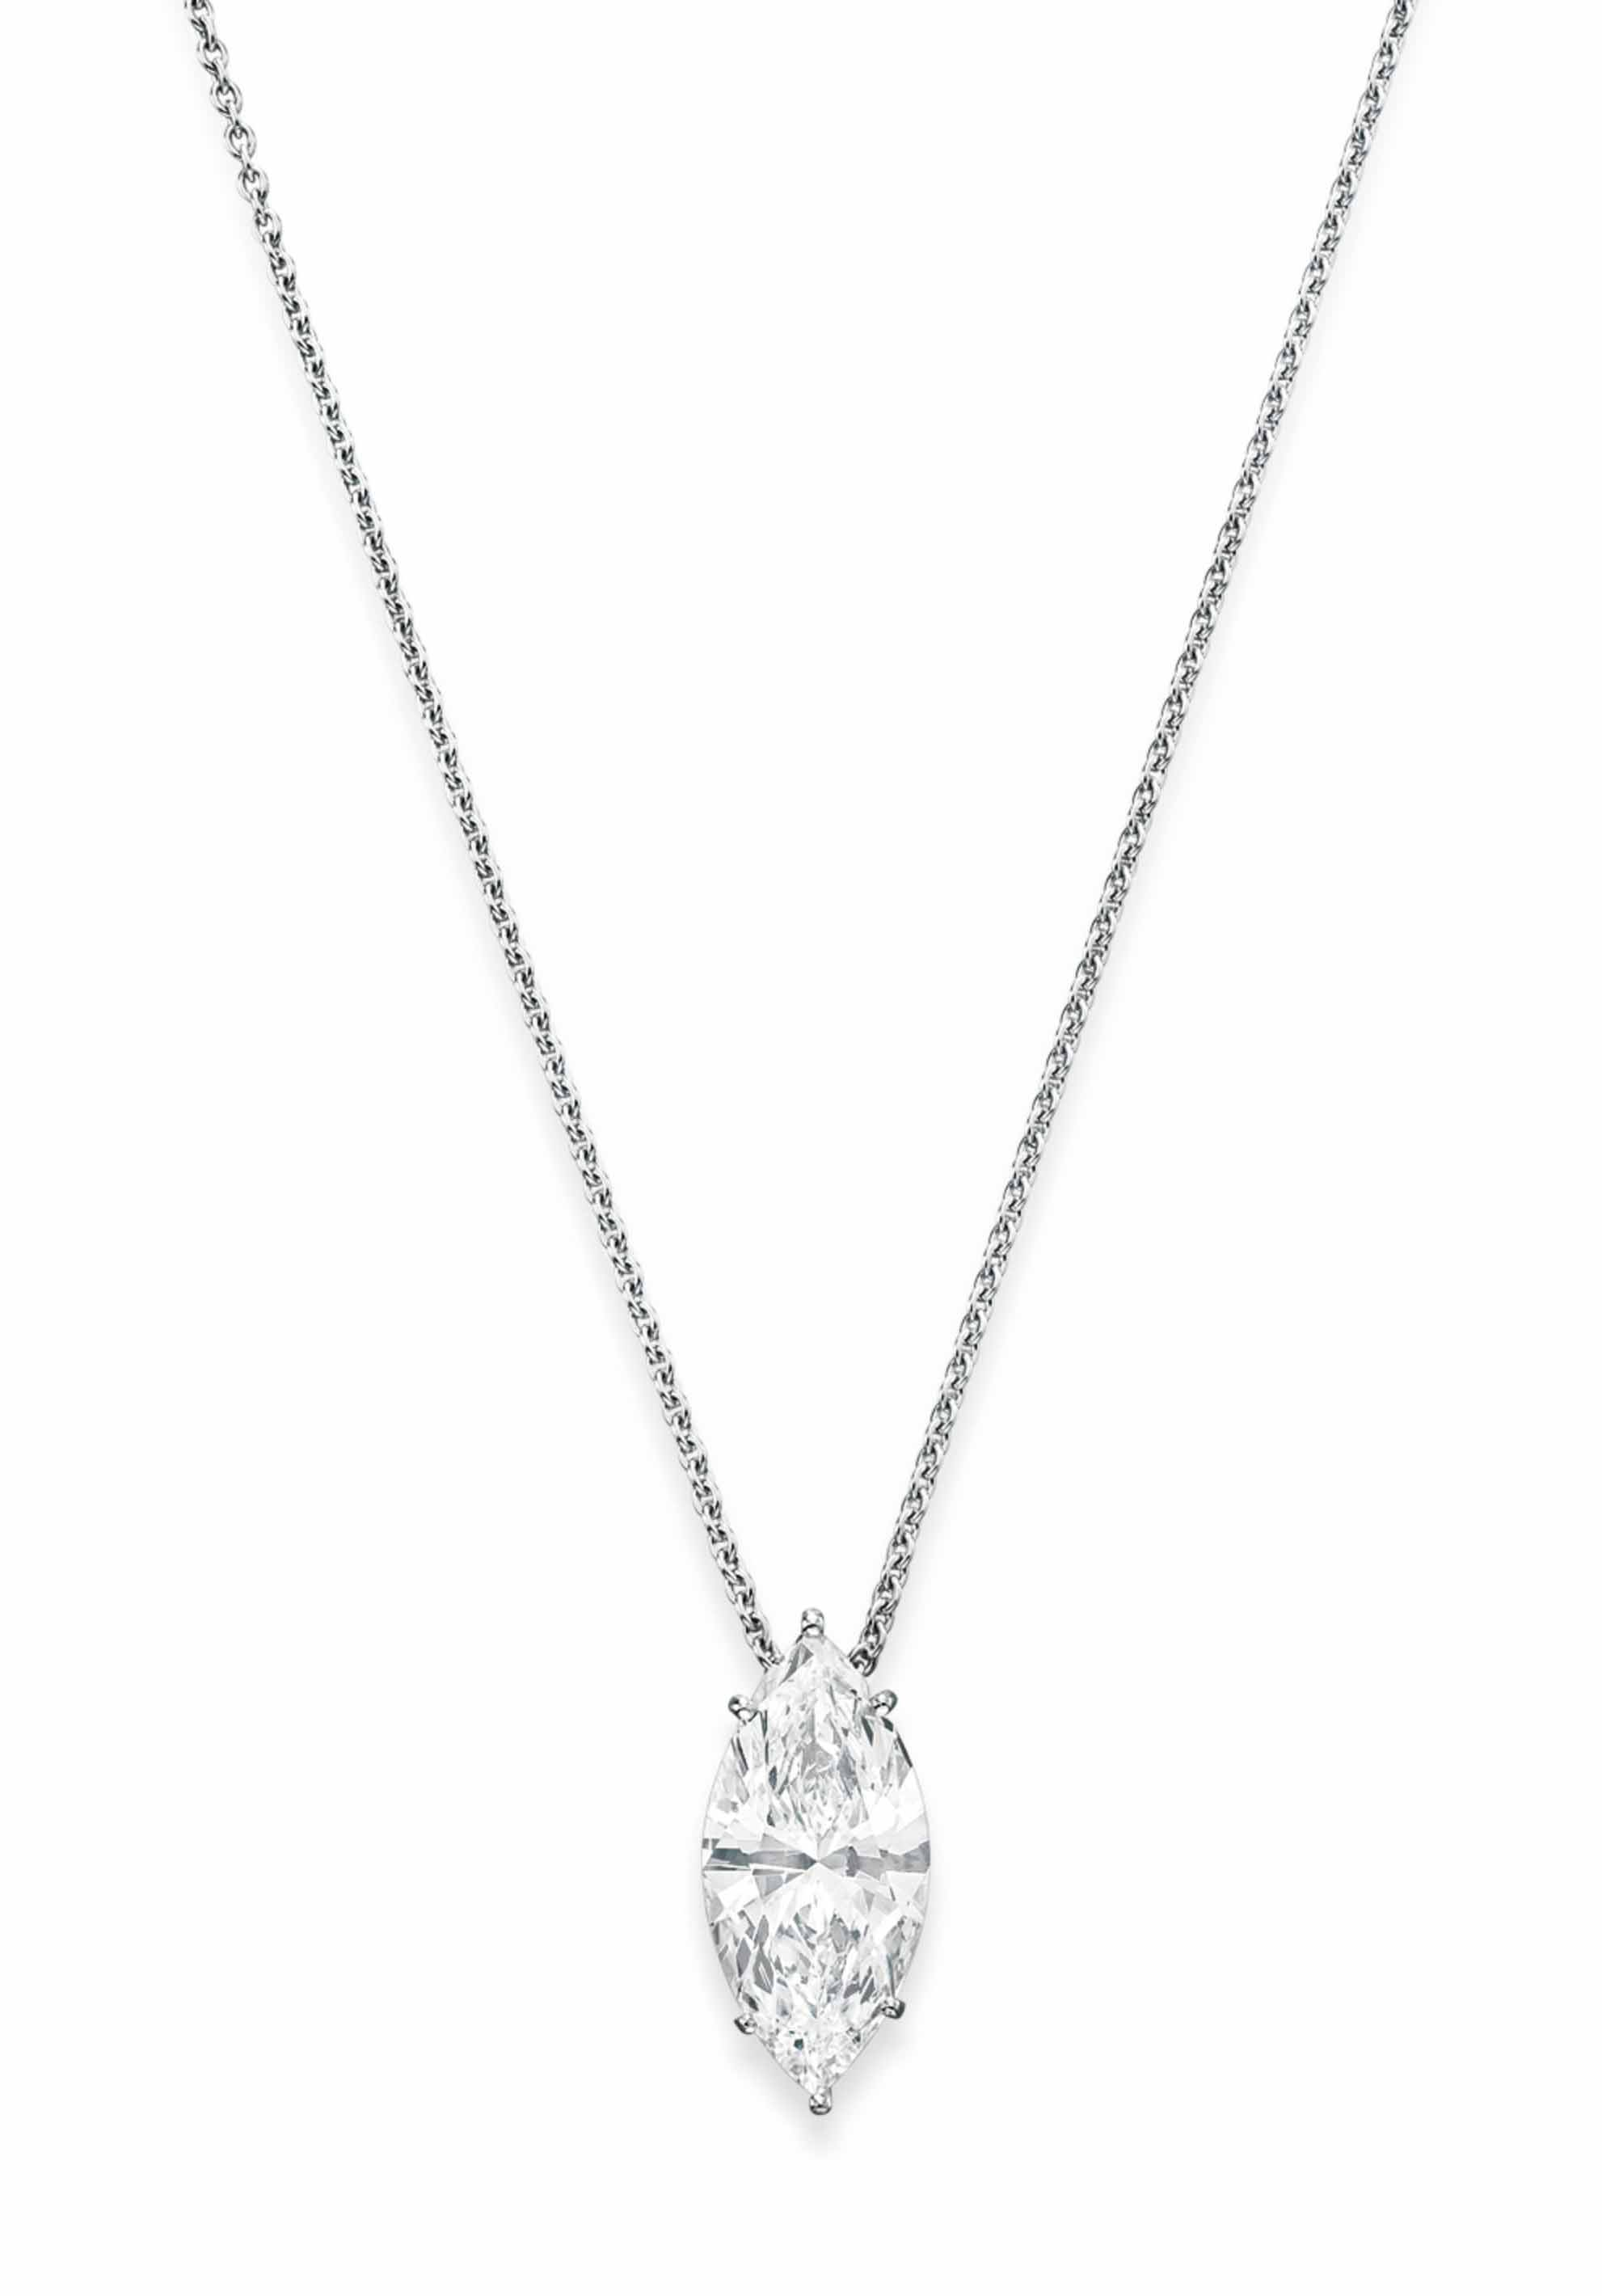 t necklace marquis s gold lyst jewelry metallic white diamond meira marquise women triple disc